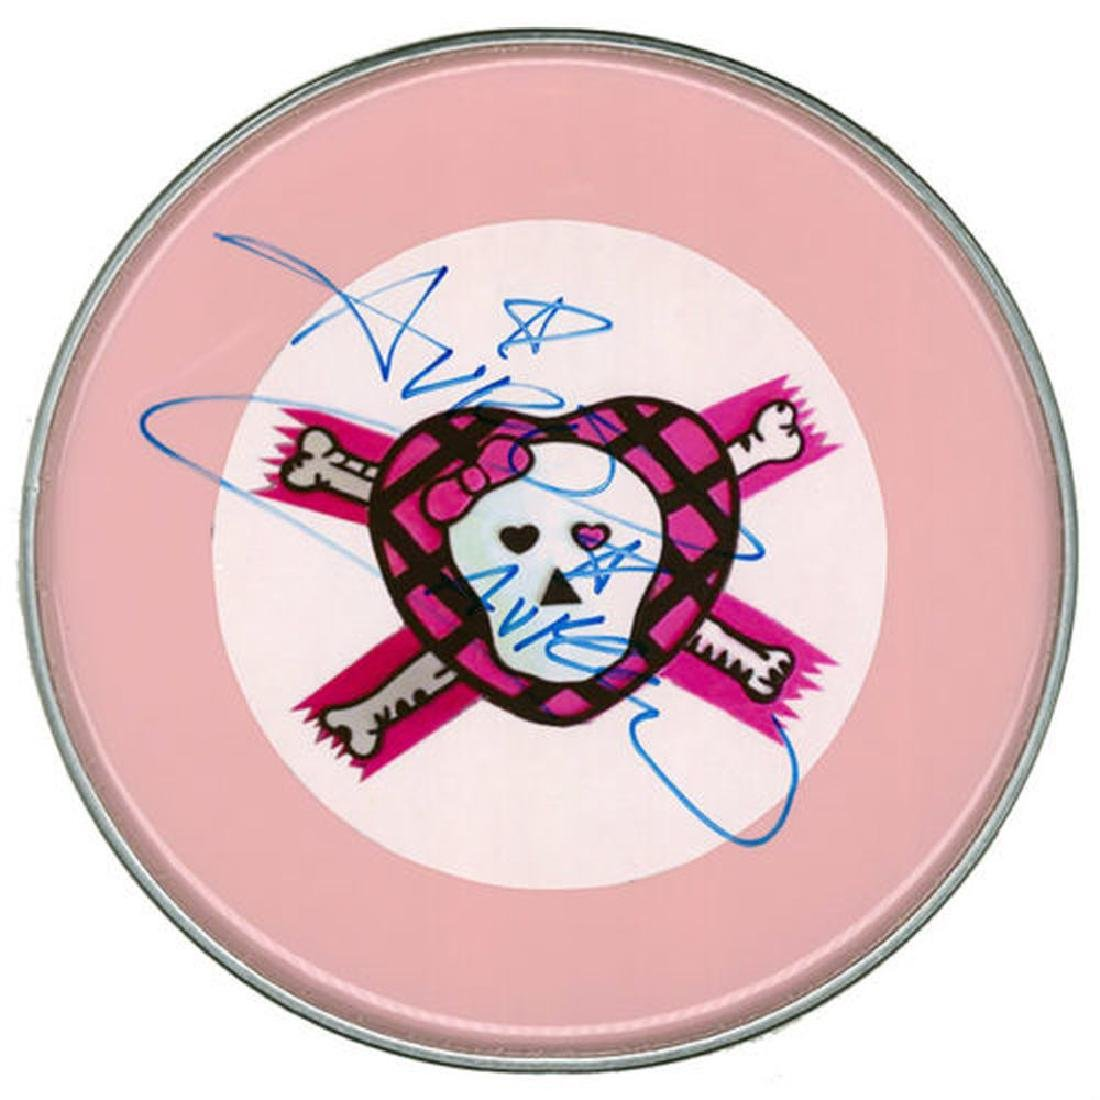 Avril Lavigne Signed Drum Head